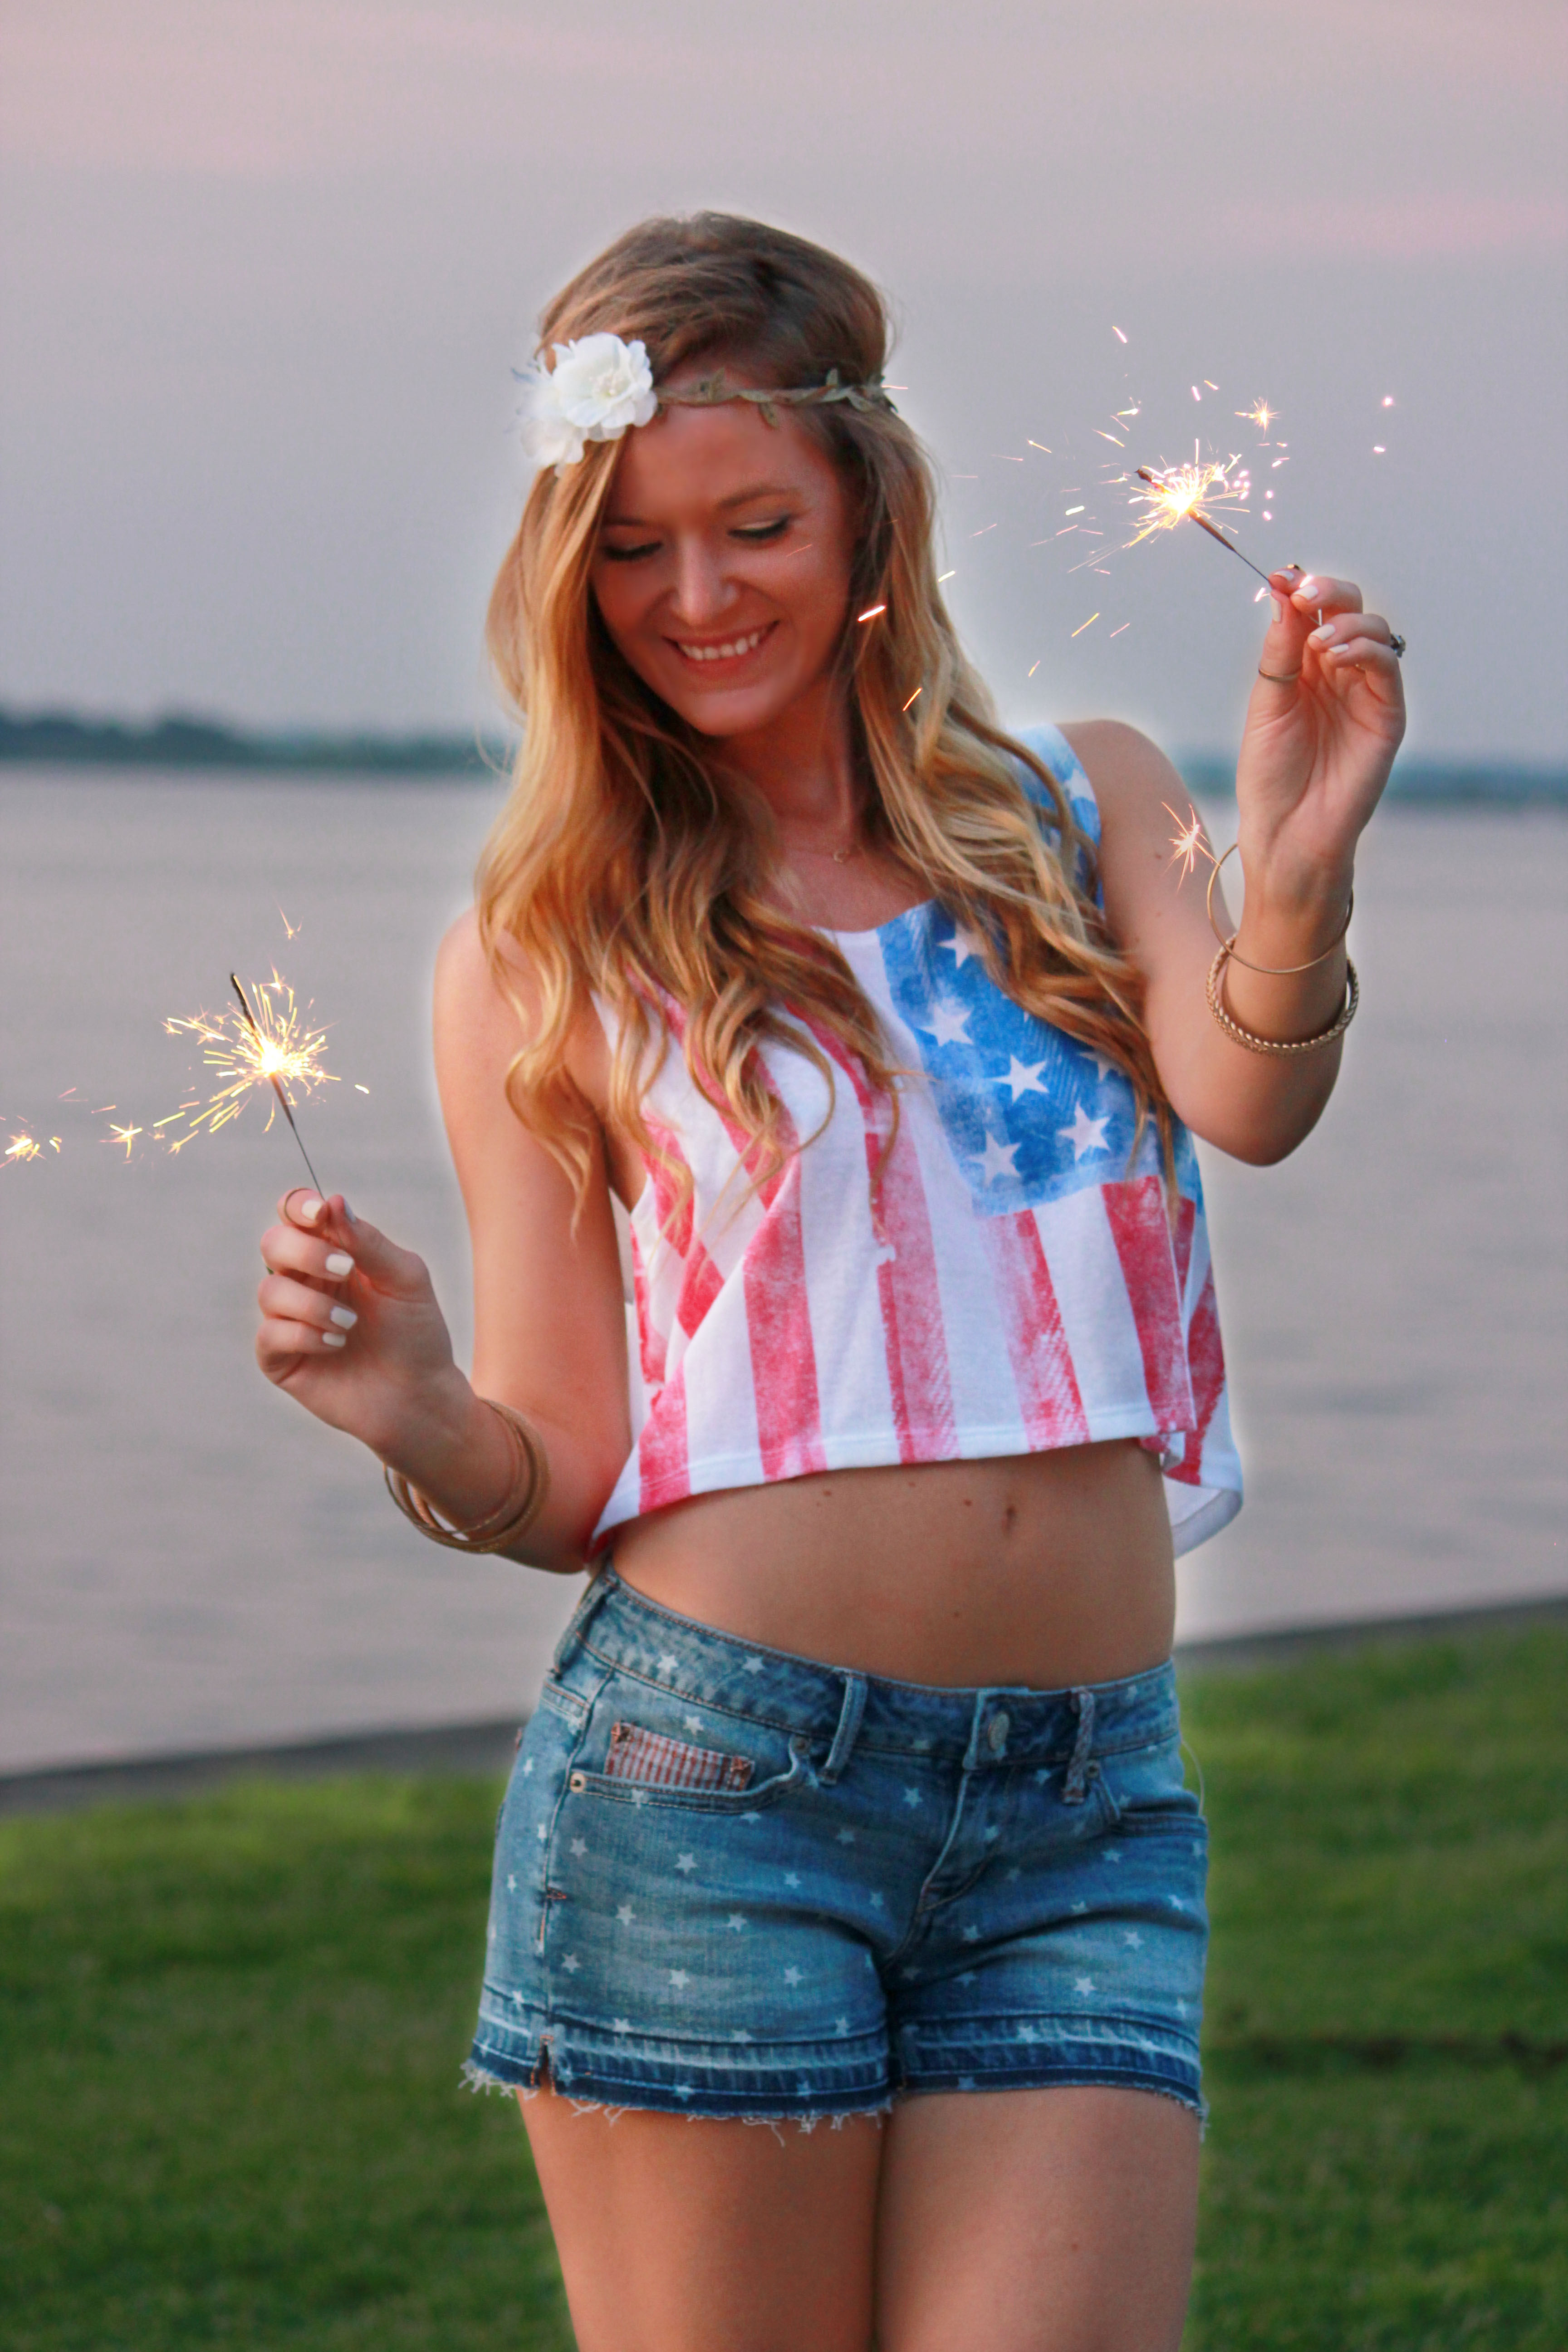 4th of july outfit, aeropostale top, aeropostalr shorts, gianni bini sandals, flower crown, summer outfit, sparkler photo